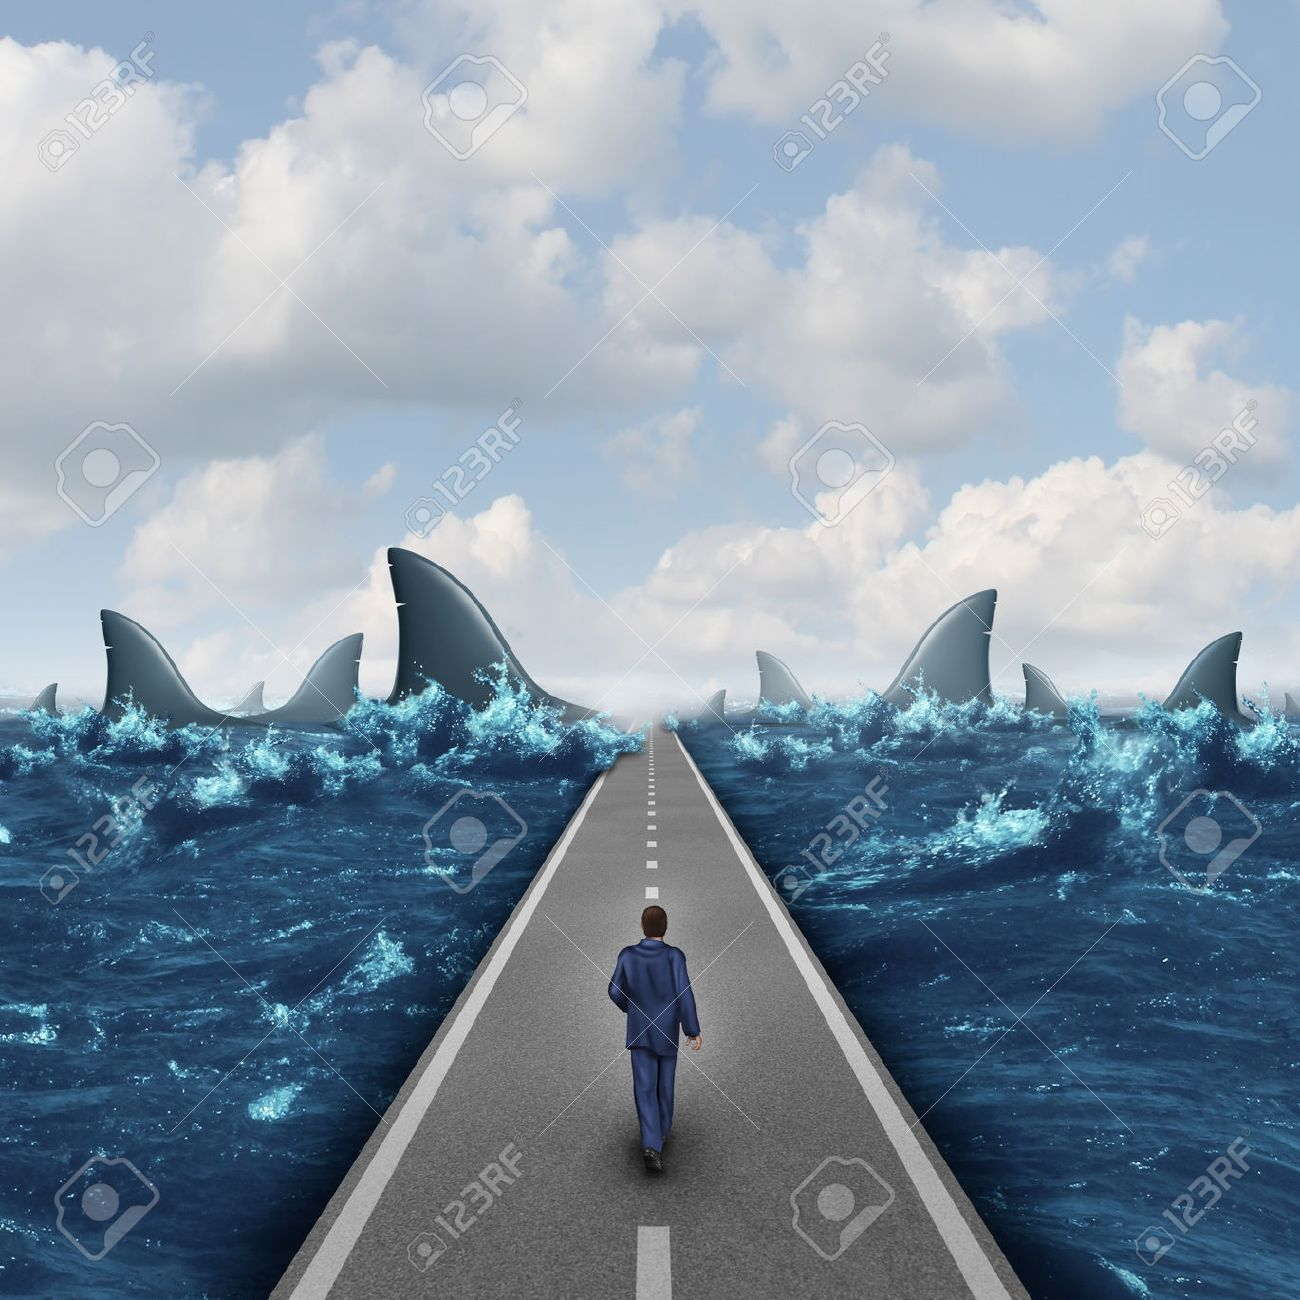 Headed for danger business concept as a man walking on a straight road towards a group of dangerous sharks as a metaphor and symbol of risk and courage from a person on a career path or life journey. - 34381854